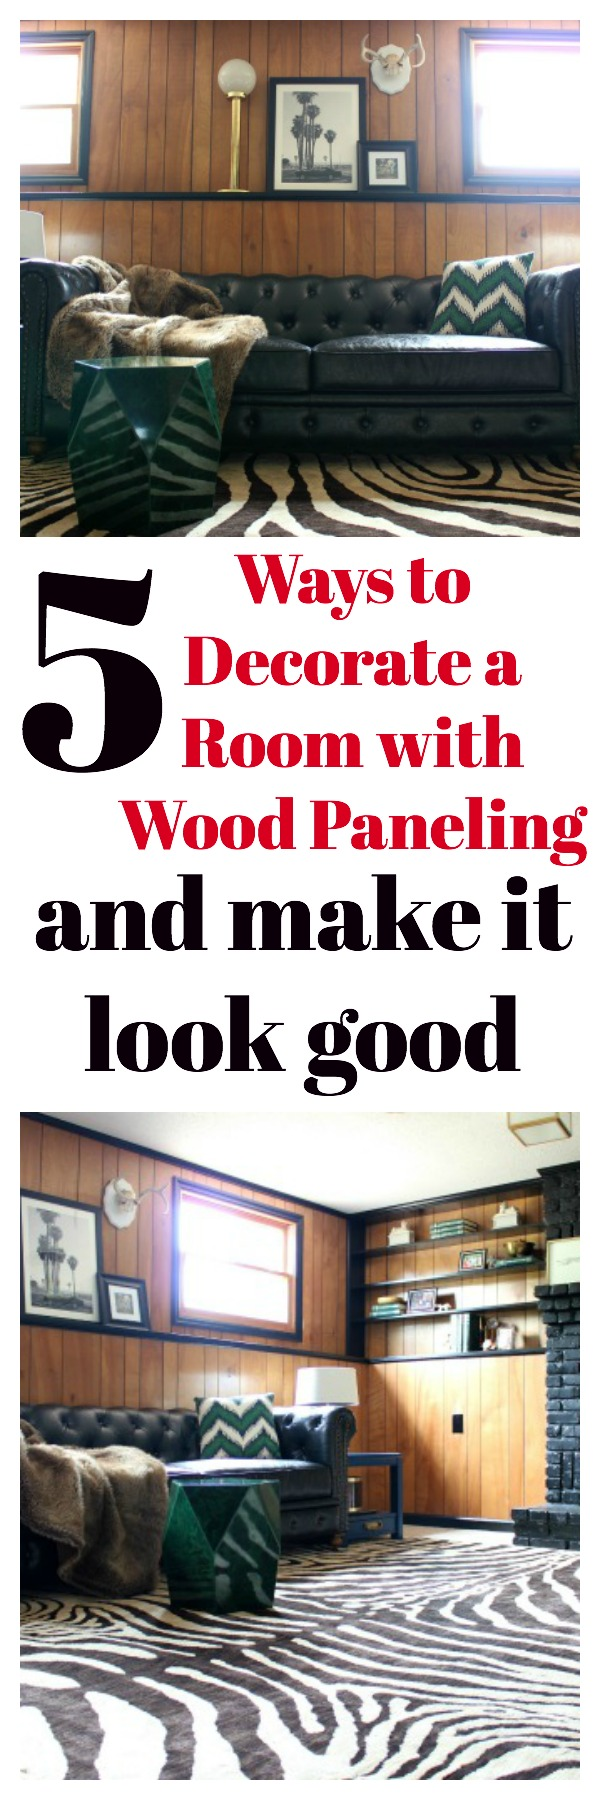 Decorate a Room with Wood Paneling Without Painting